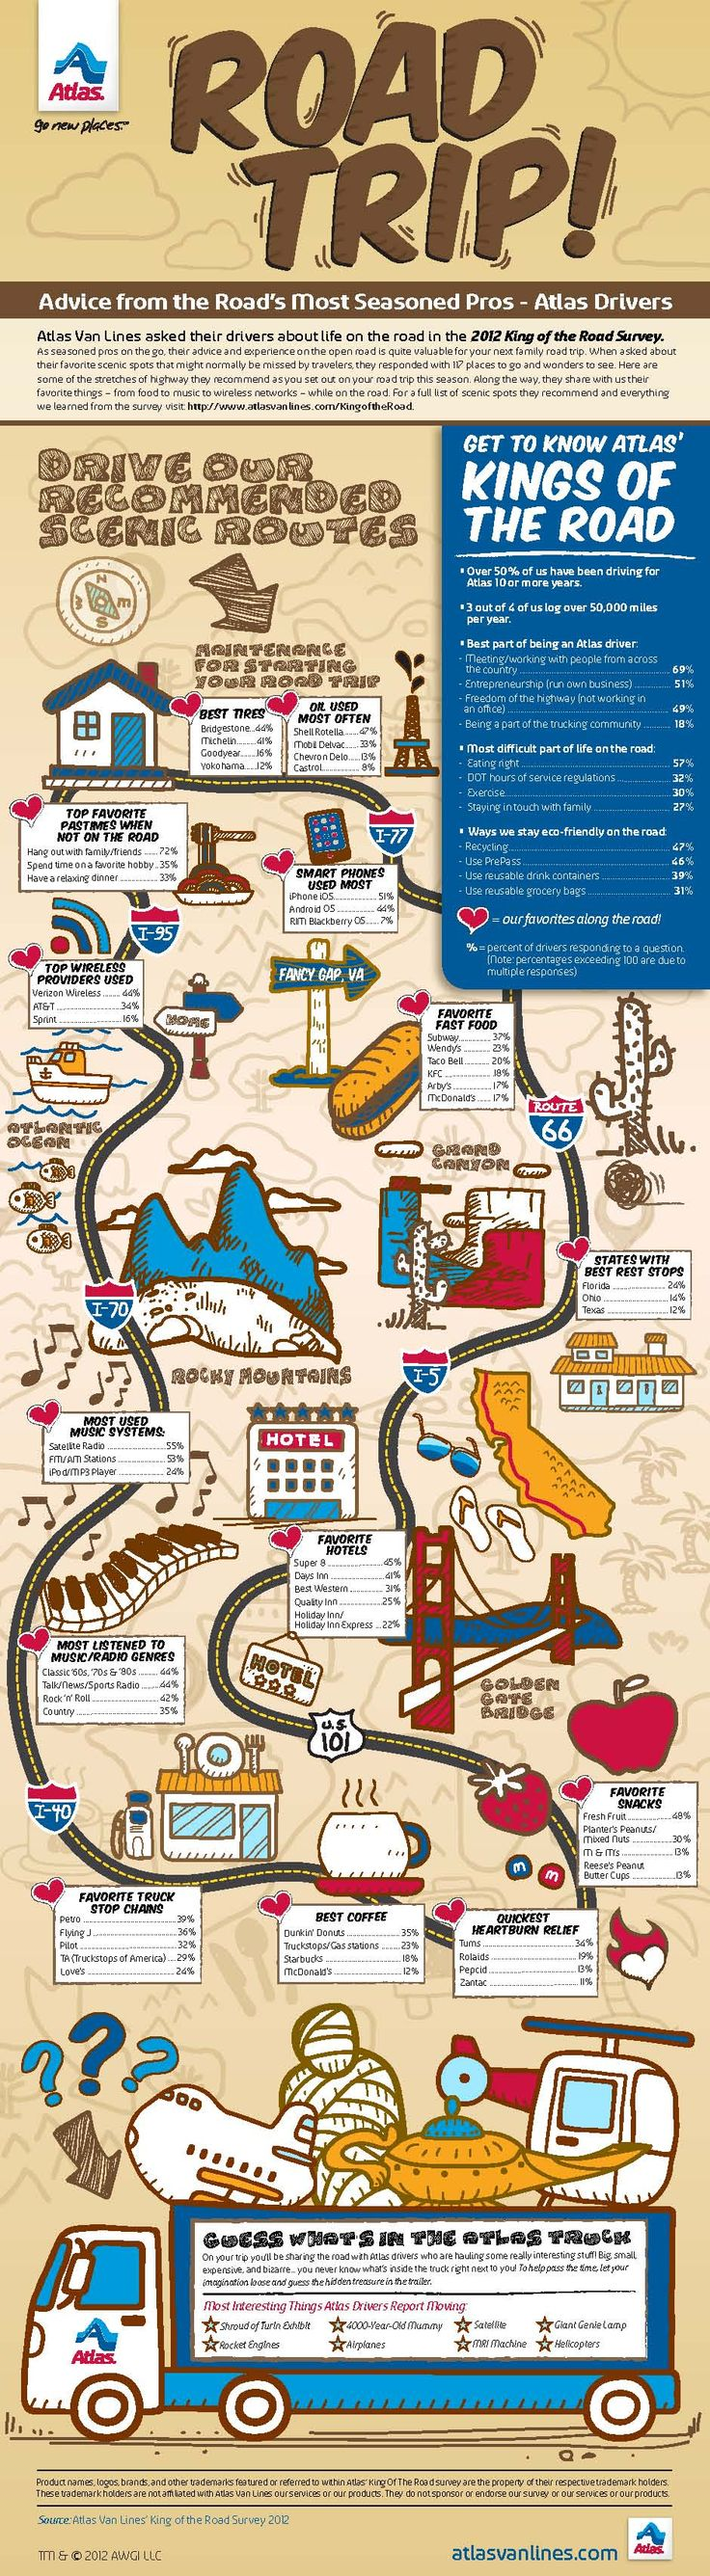 Take a Road Trip with the help of Atlas Drivers, the road's most seasoned pros. This infographic features some of the findings from Atlas Van Lines'Pros Infographic, The Roads, Seasons Pro, Roads Trips Tips, Summer Roadtrip, Road Trips, Infographic Inspiration, Road Trip Tips, Trucks Driver